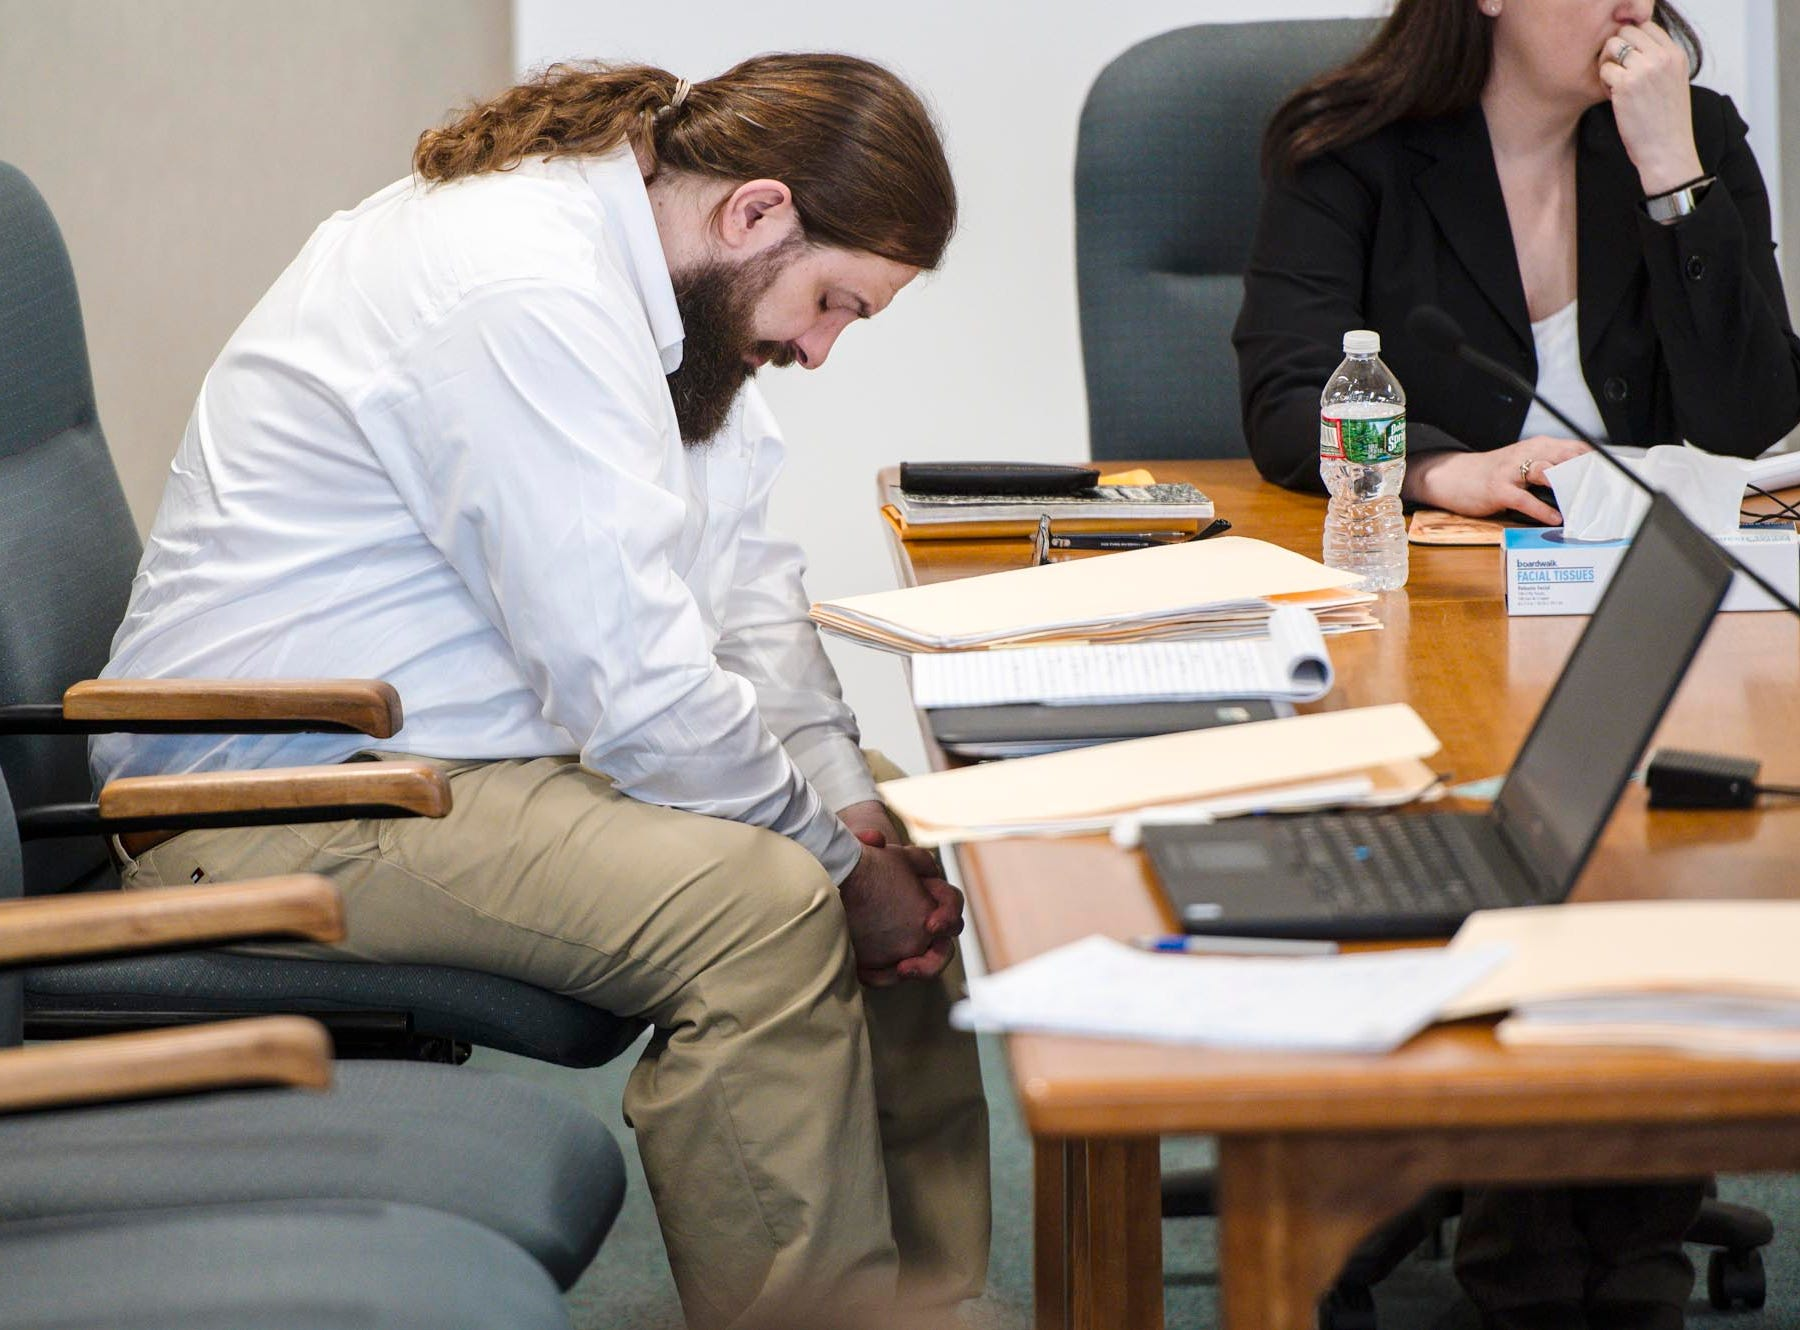 Steven Bourgoin bends his head during a break in his murder trial in Vermont Superior Court in Burlington on Tuesday, May 7, 2019. Bourgoin is facing five counts of second-degree murder for a crash that killed five teenagers on I-89 in Williston in 2016. Pool photo by Glenn Russell/VTDigger